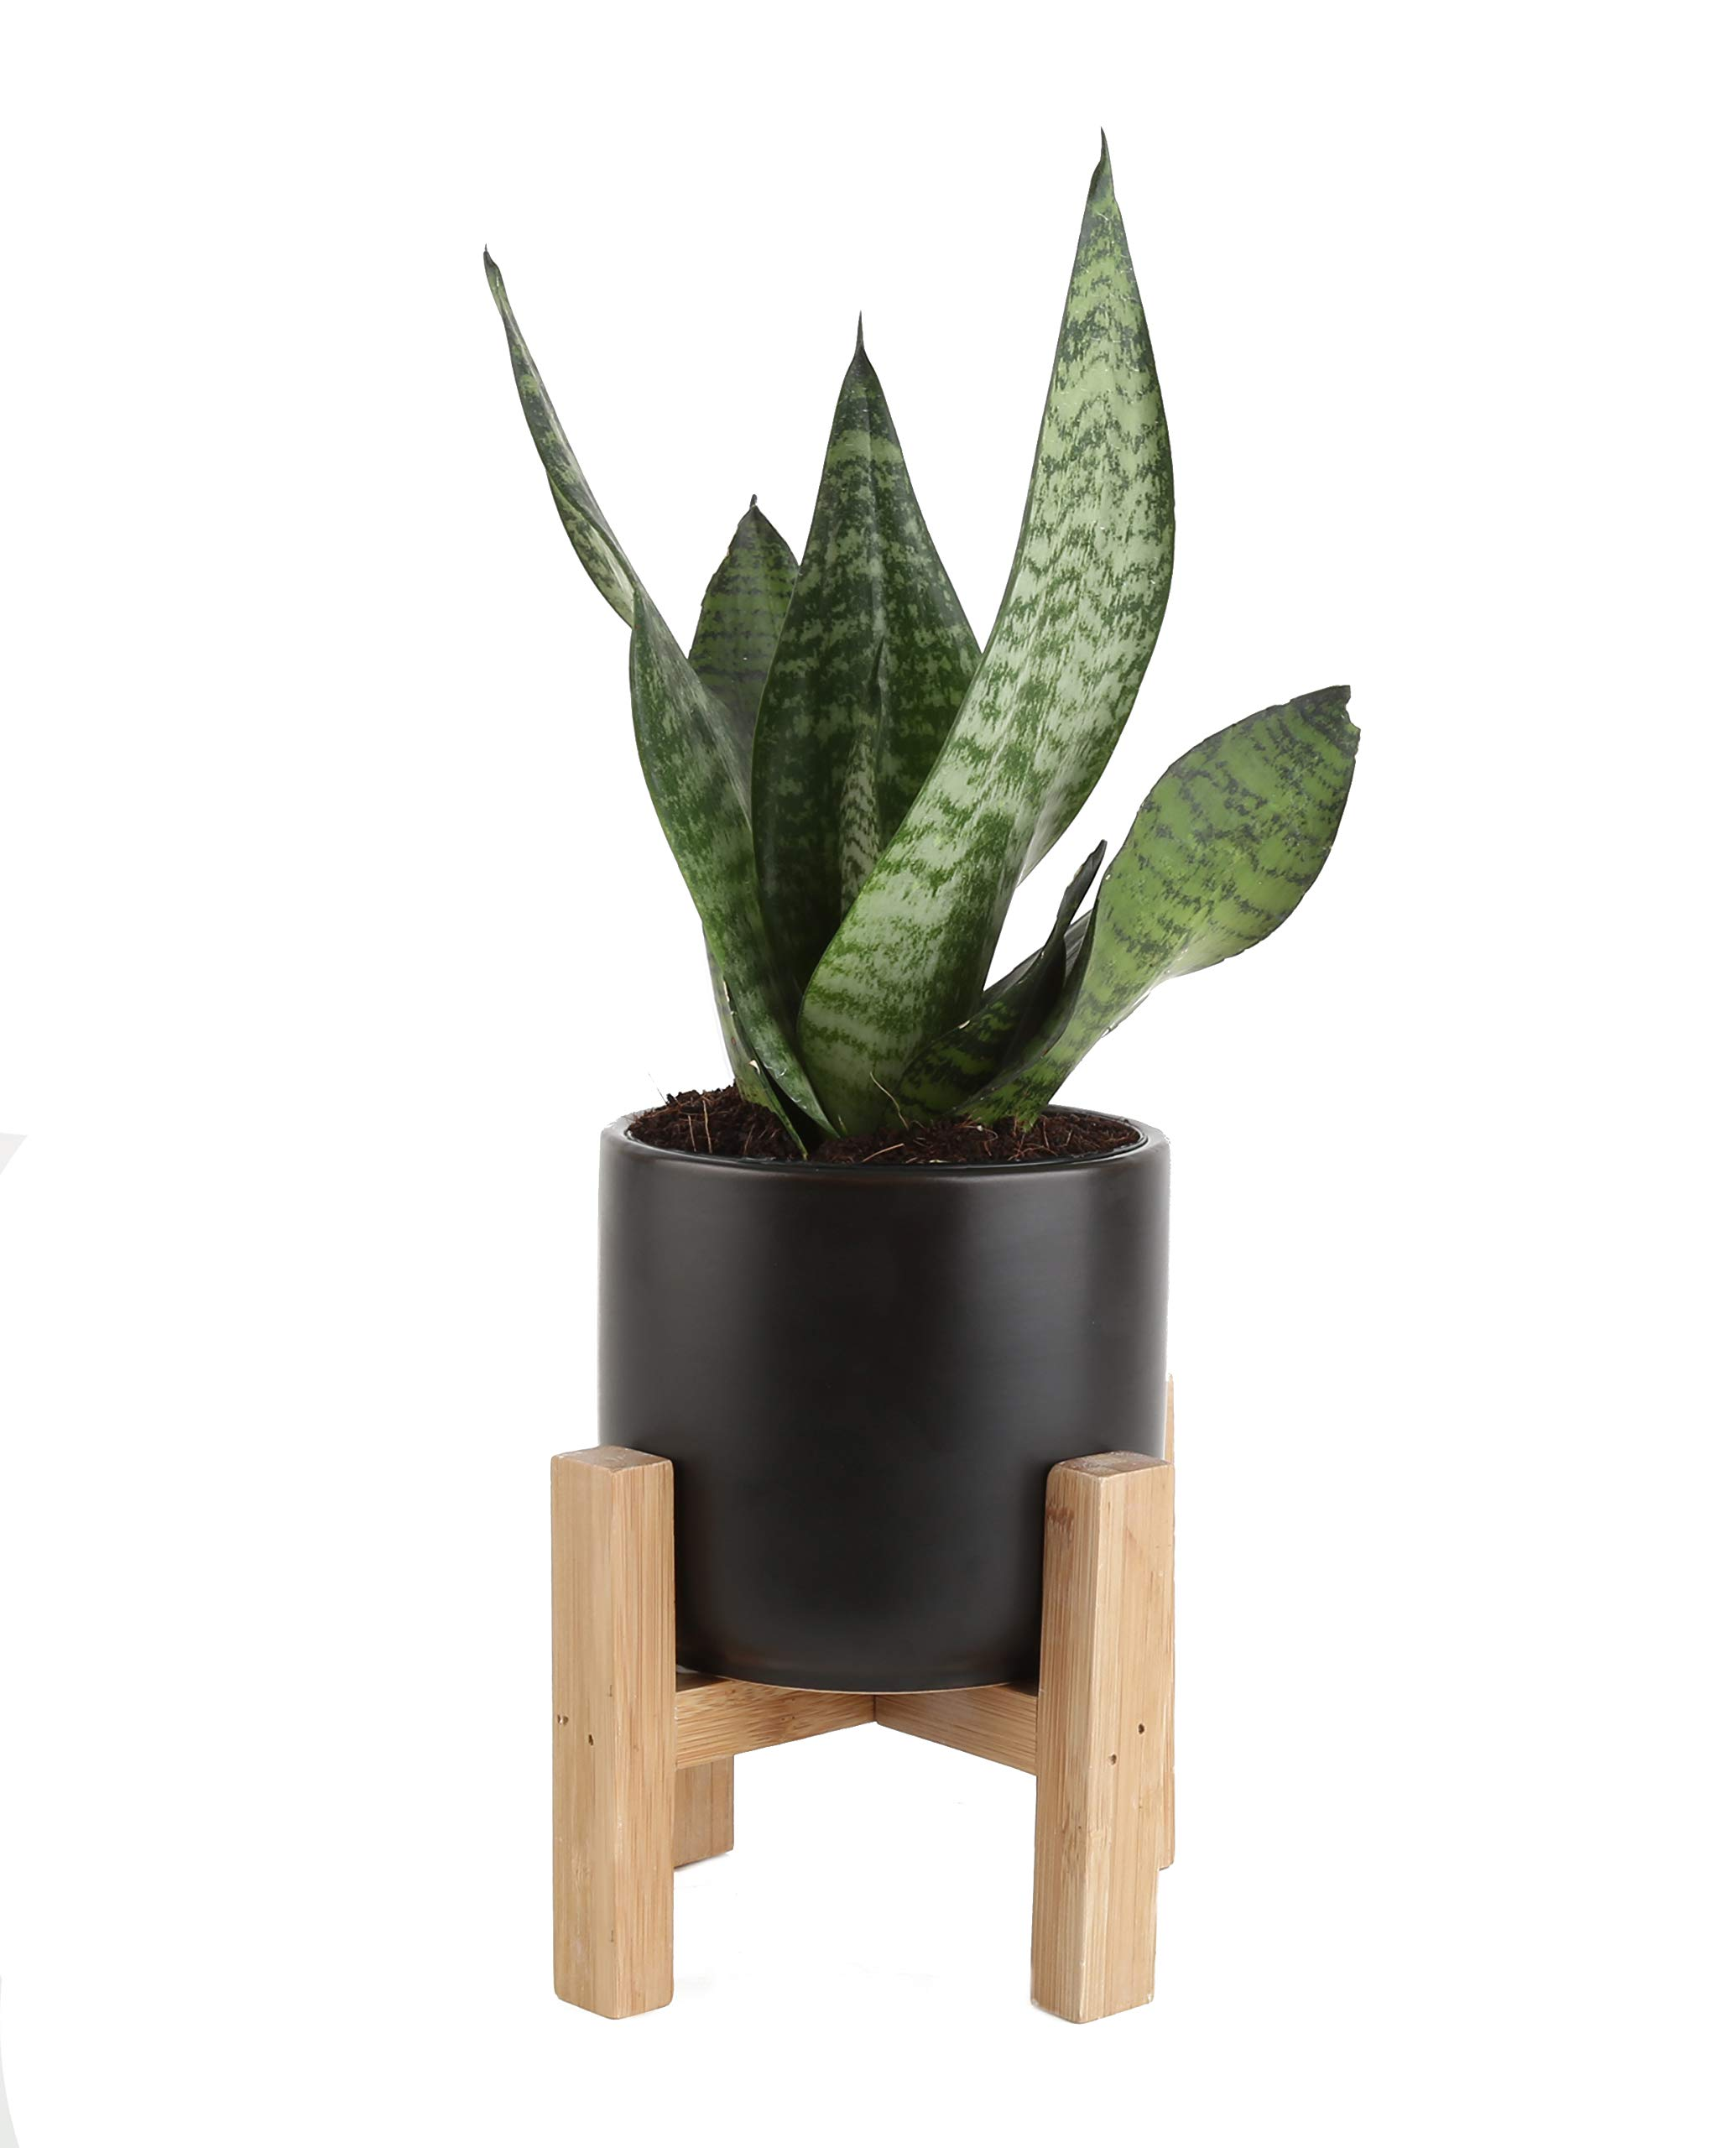 Costa Farms Snake Plant, Sansevieria, with 4.25-Inch Wide Mid-Century Modern Planter and Plant Stand Set, Black, Fits on Shelves/Tabletops